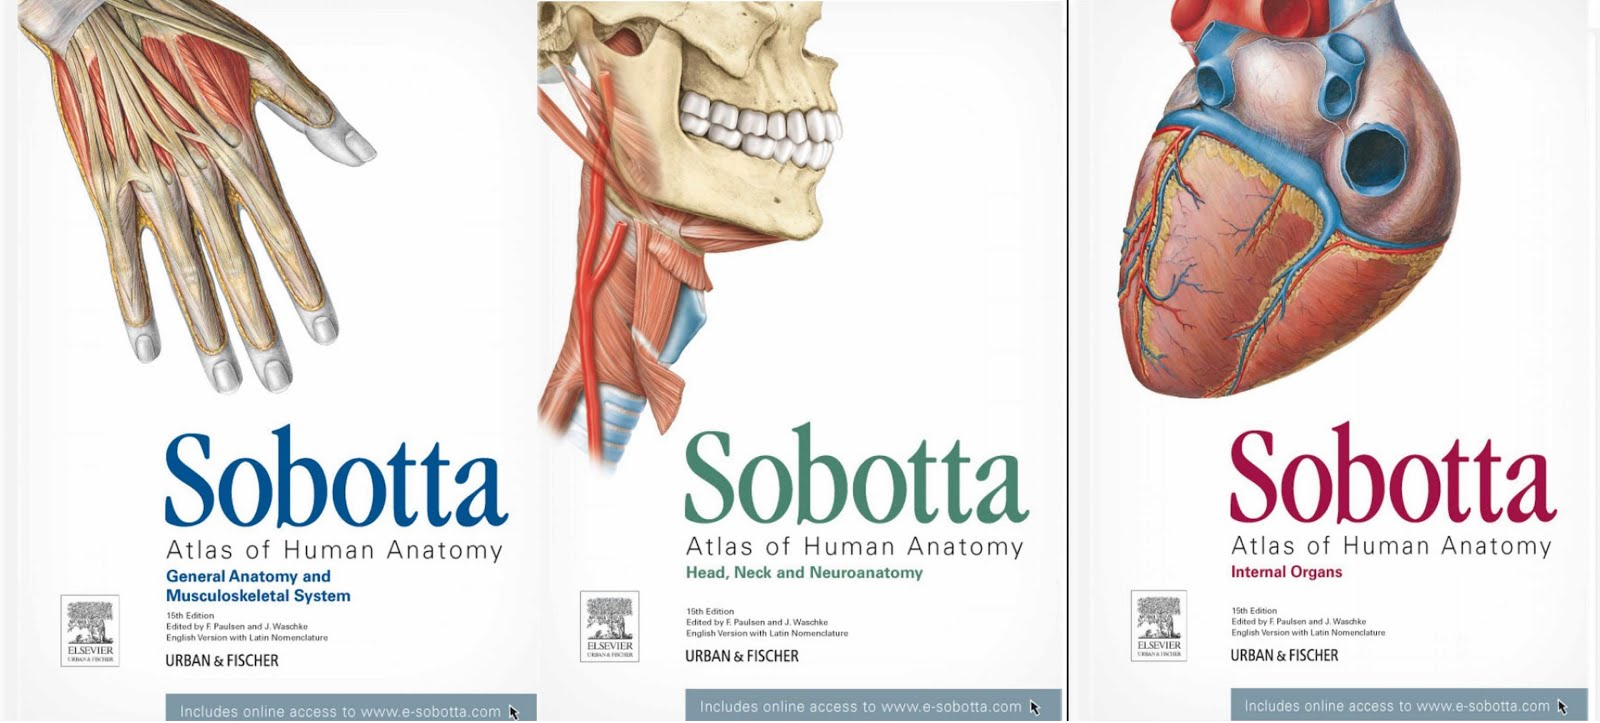 Download Sobotta Atlas of Human Anatomy 15th Edition (English Edition)